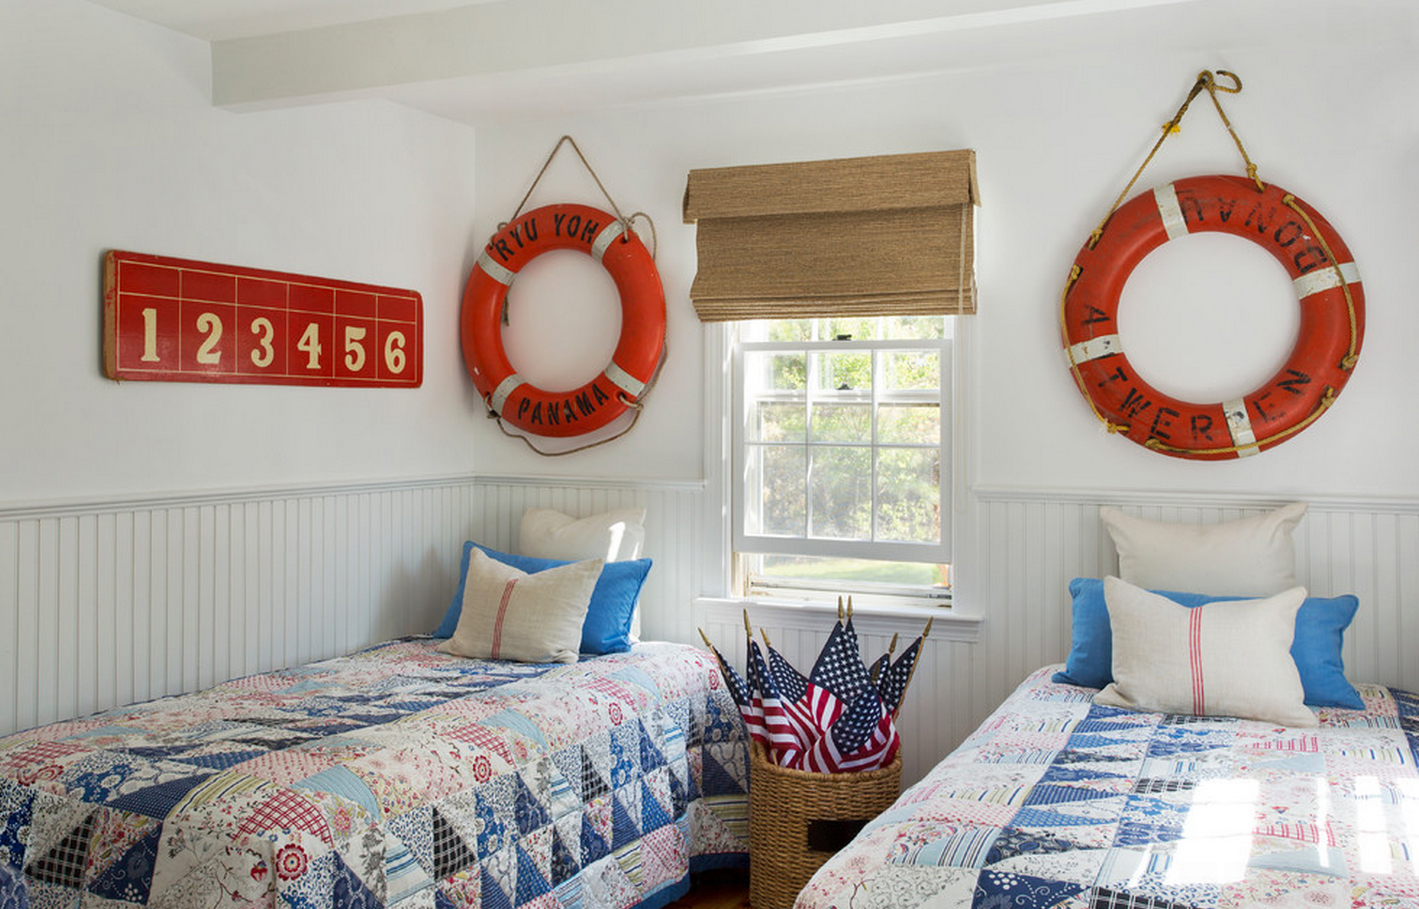 Life Buoy on the Wall behind the Bed